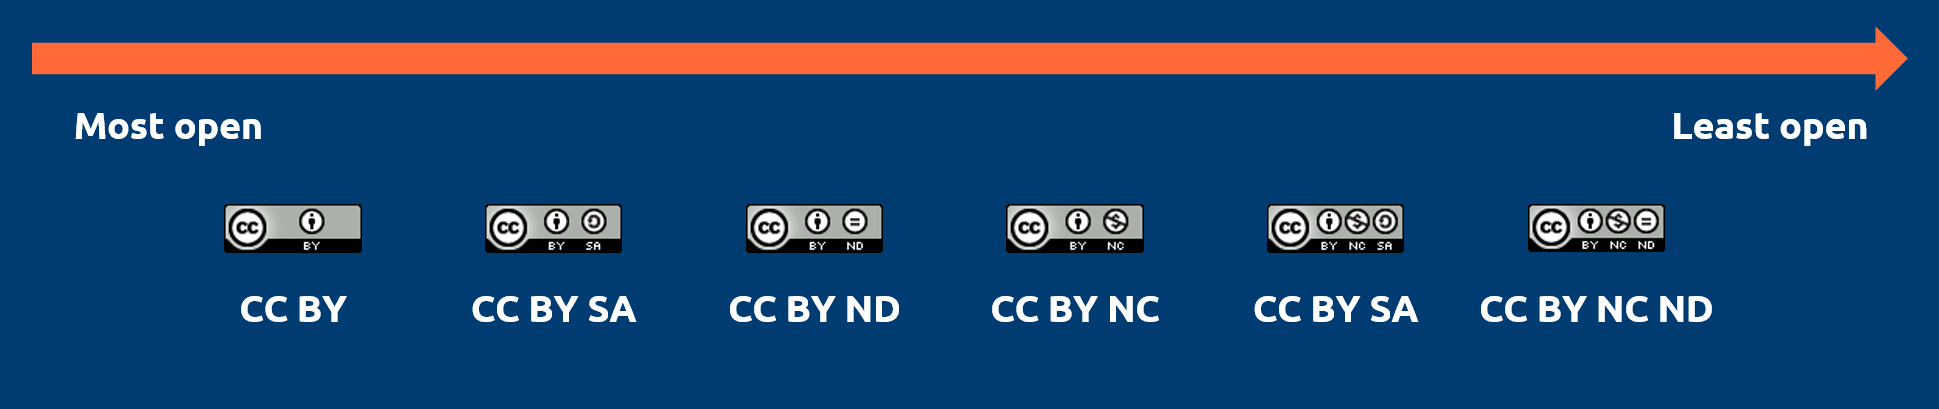 The CC licenses, ranging from most open to least open.